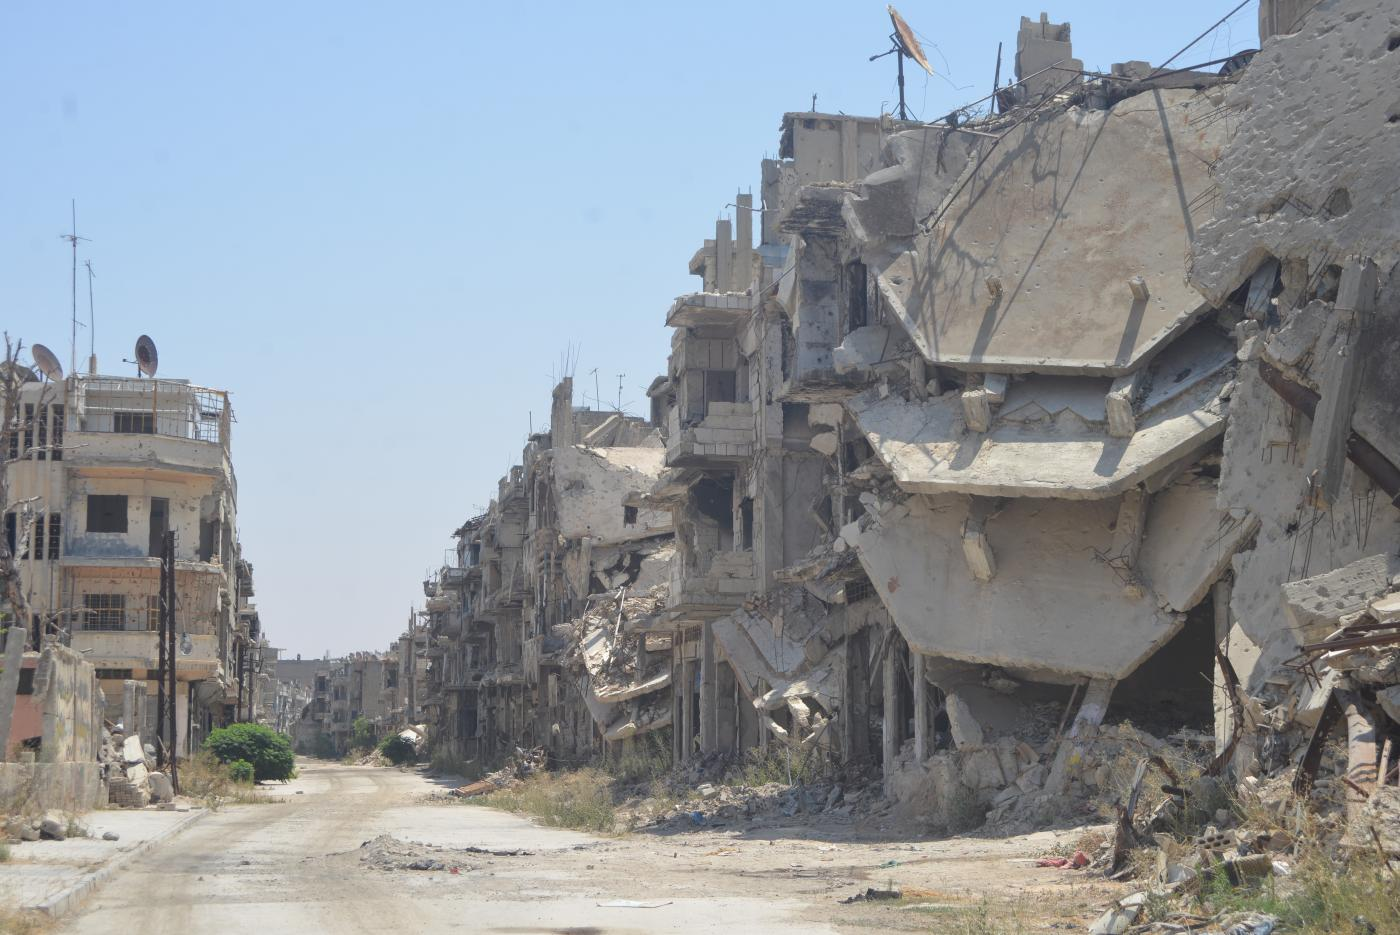 Extreme Tourism Wanderlust Westerners Drawn To War Torn Syria